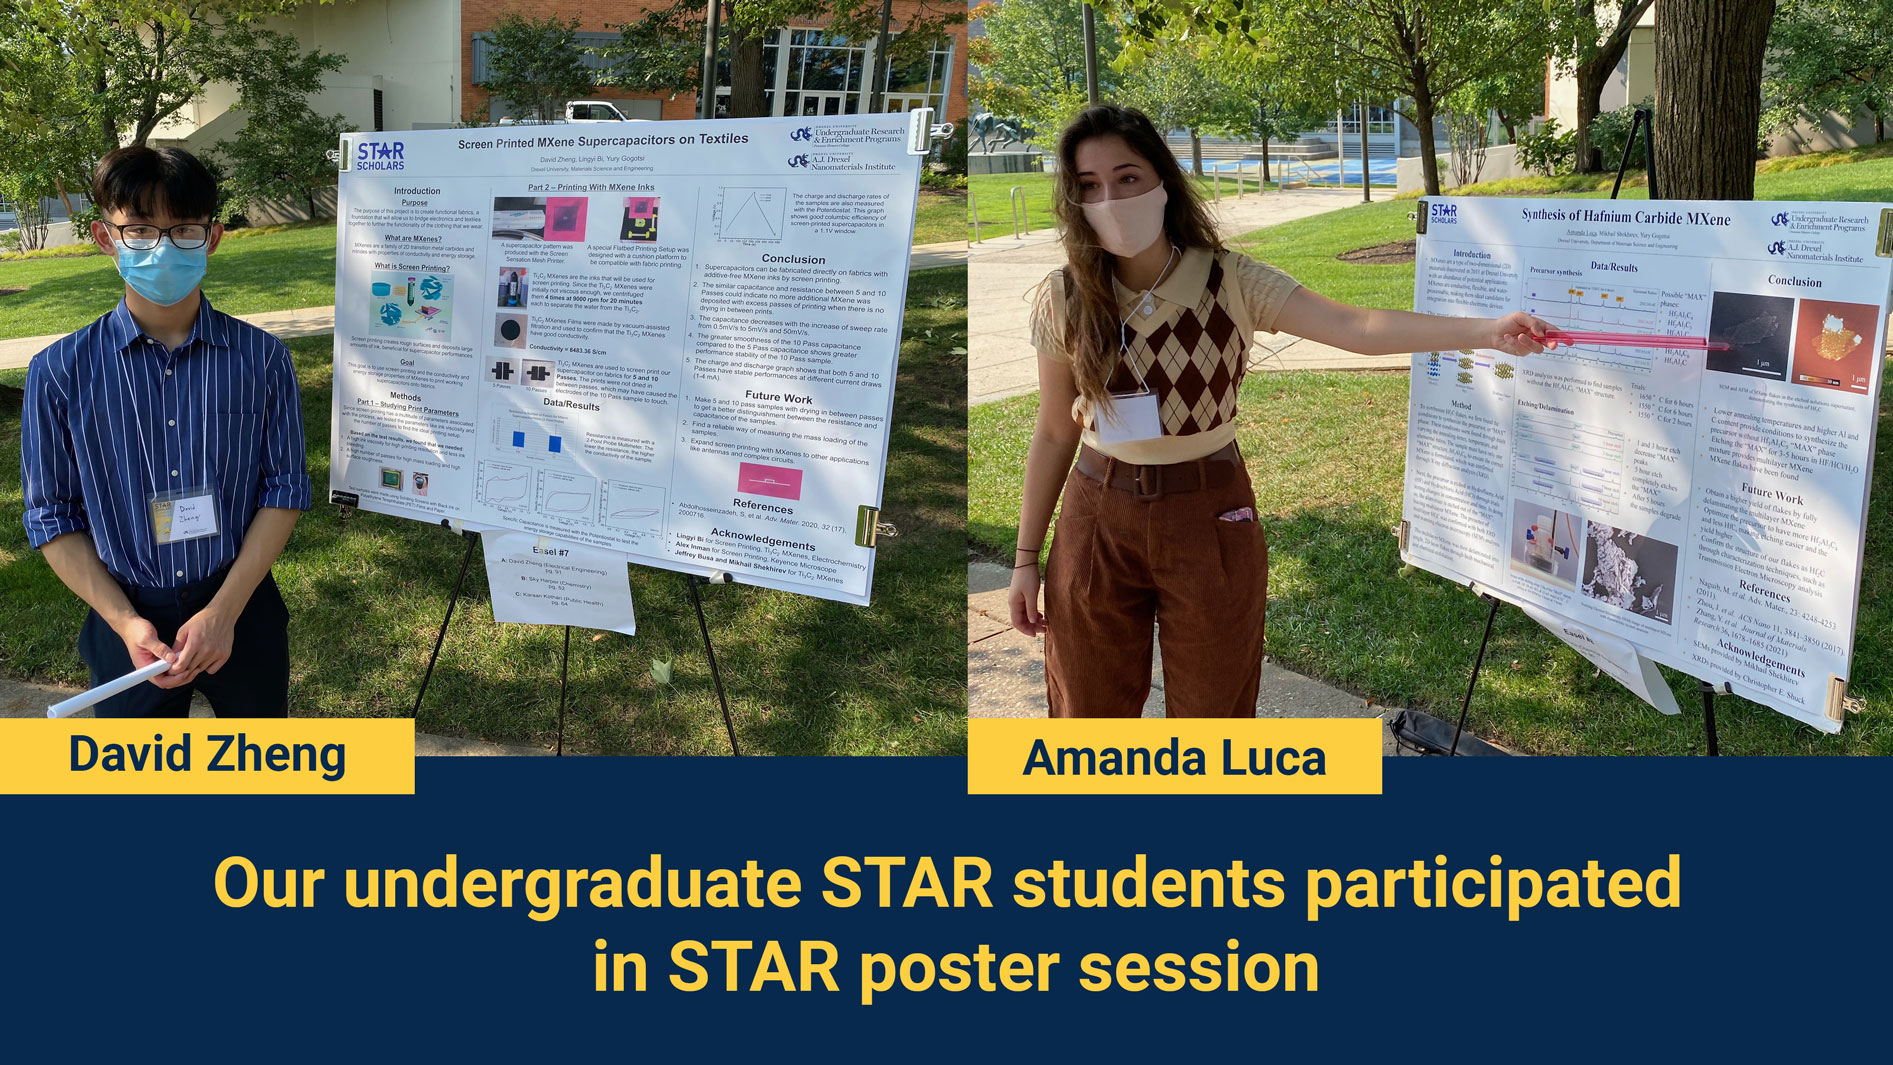 Our Undergraduate STAR Students Participated in STAR Poster Session